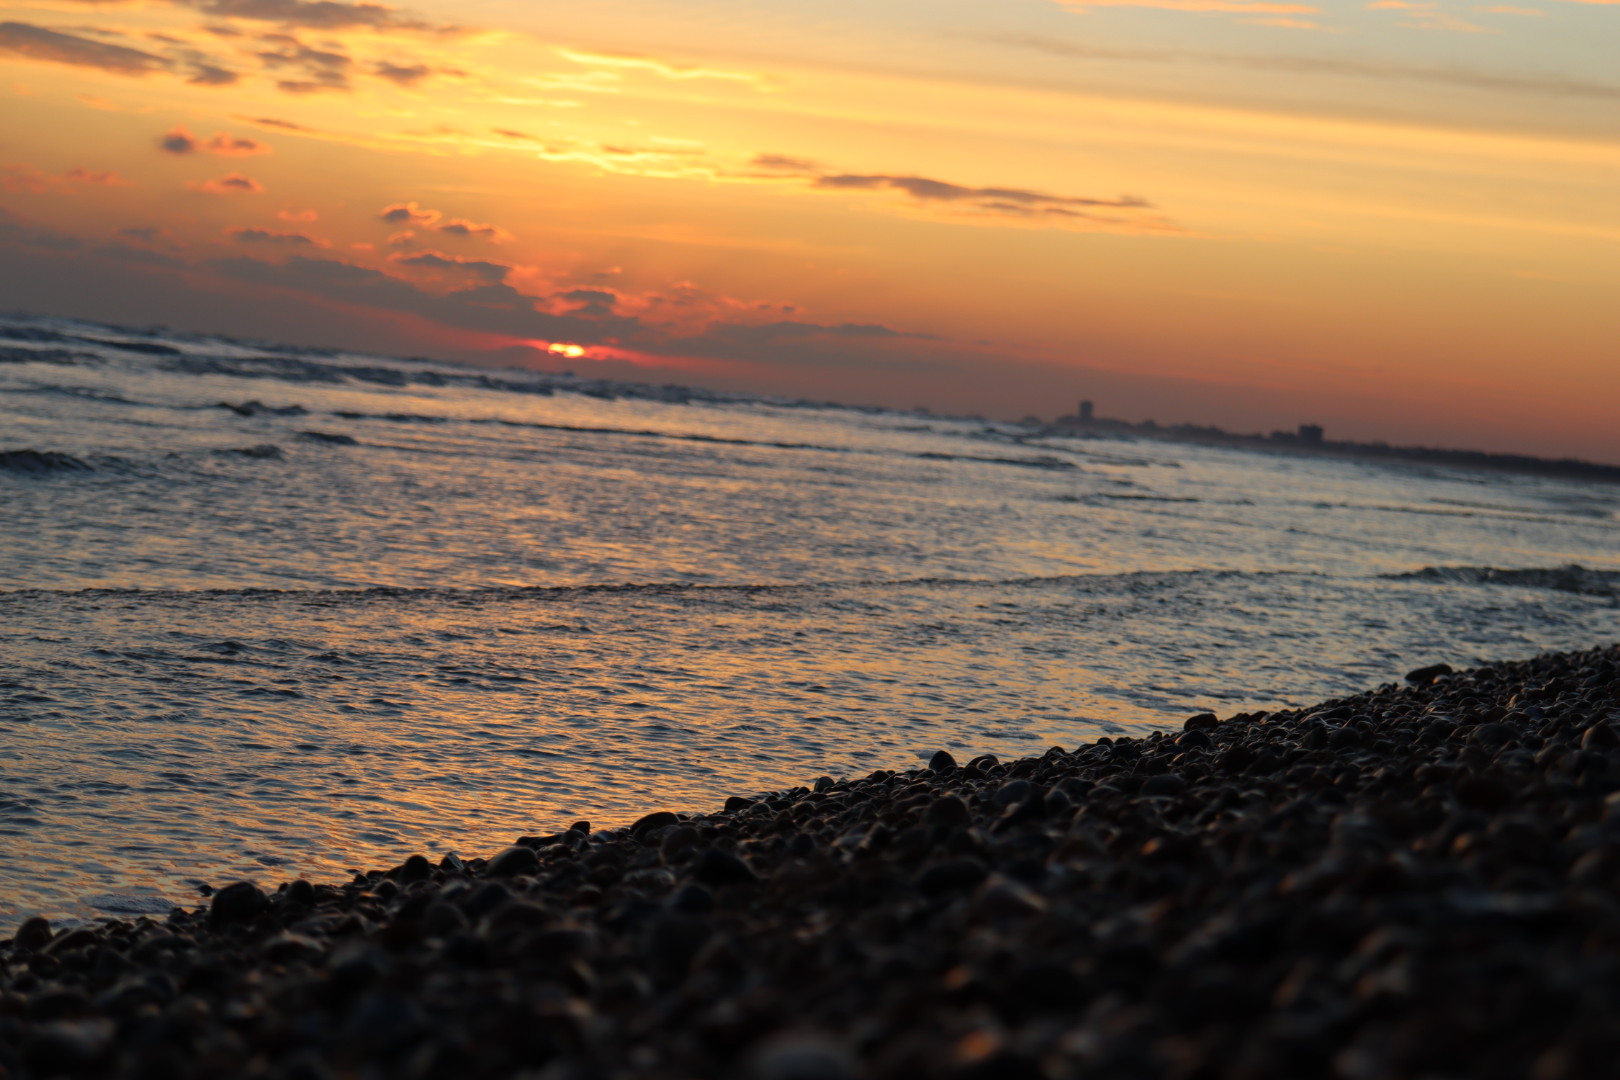 Shingle with little waves breaking behind and a sunset obsured by clouds.